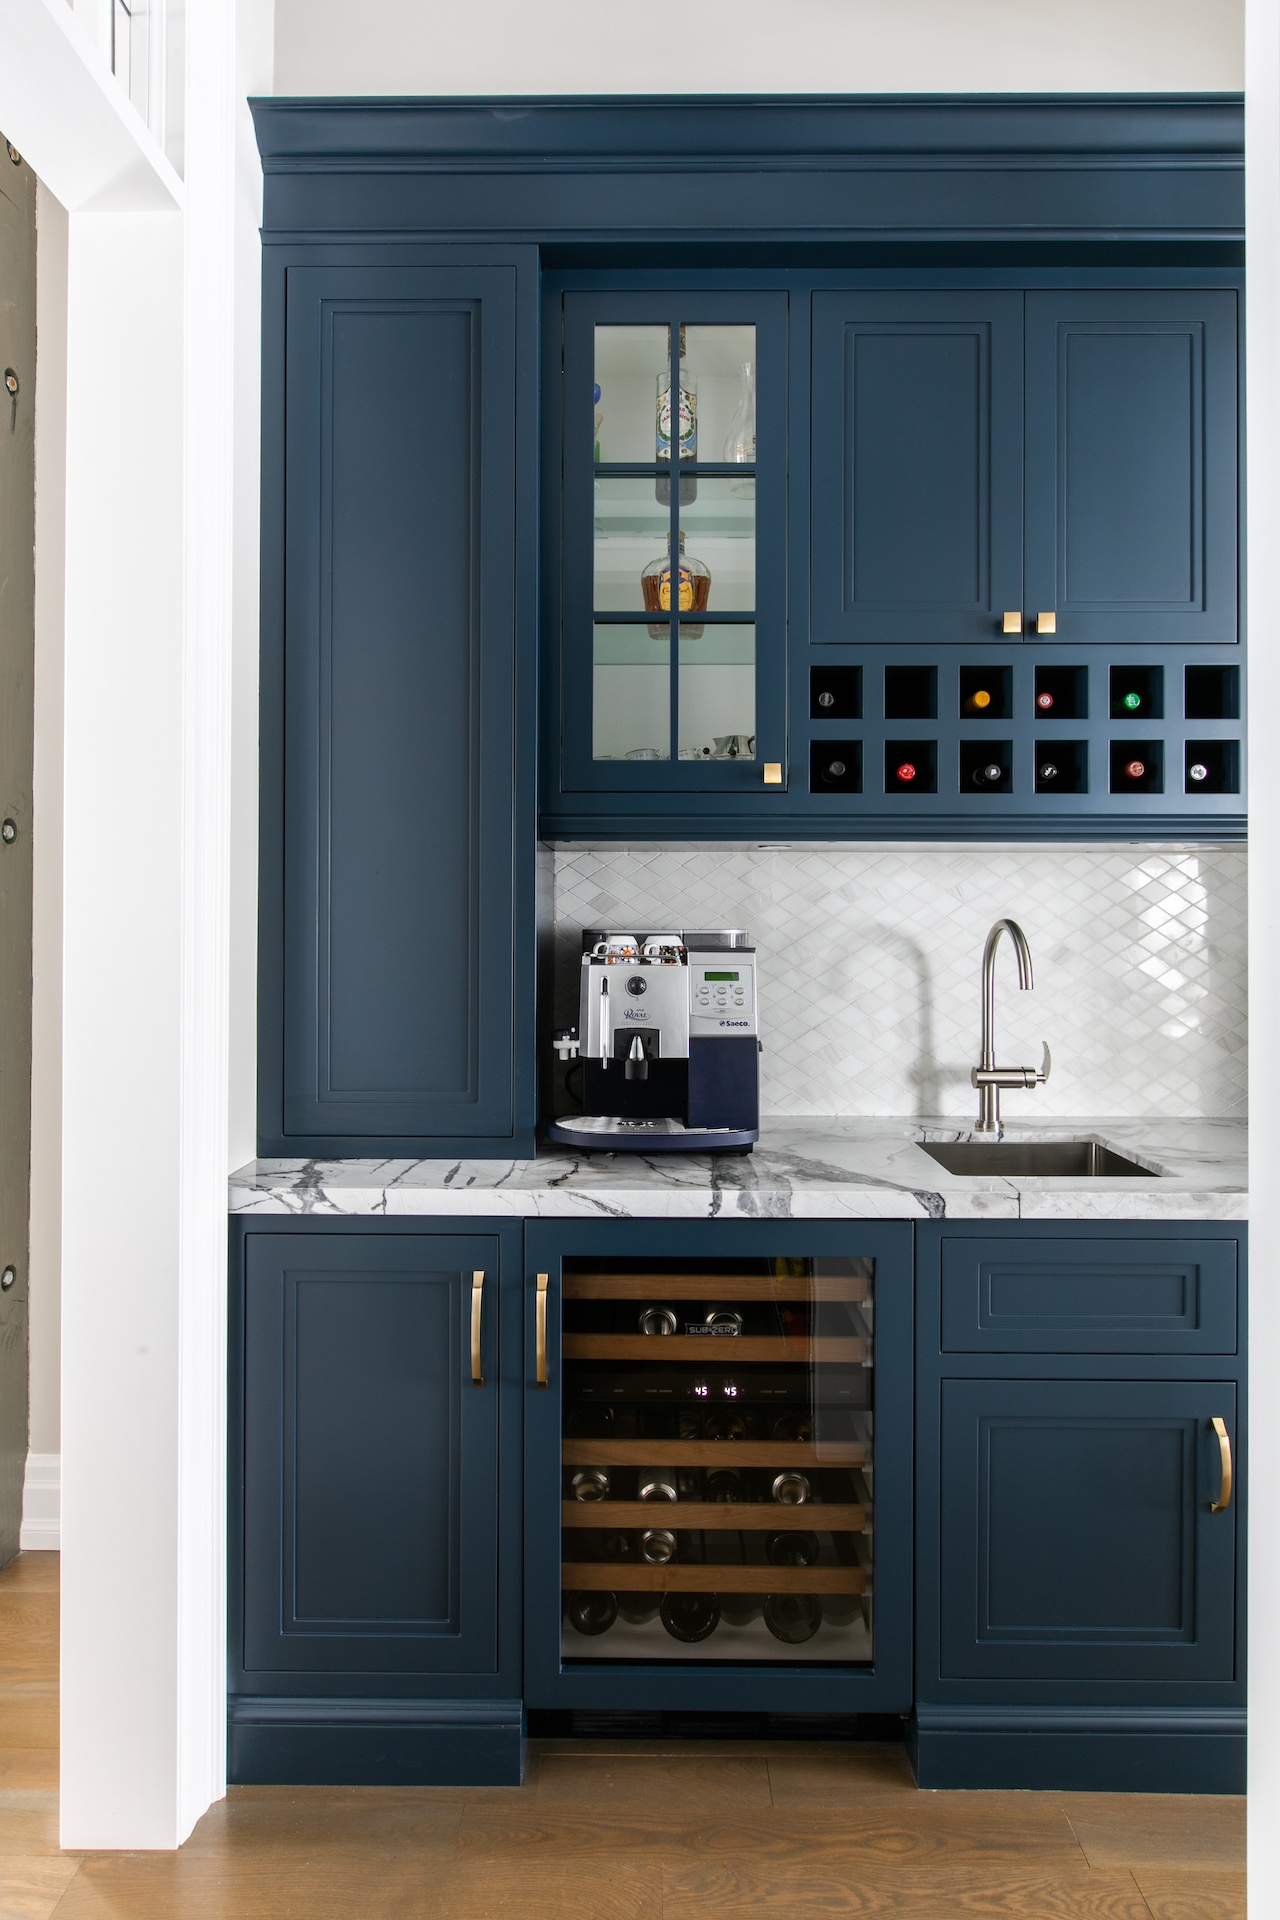 Blue kitchen cabinets and white counter